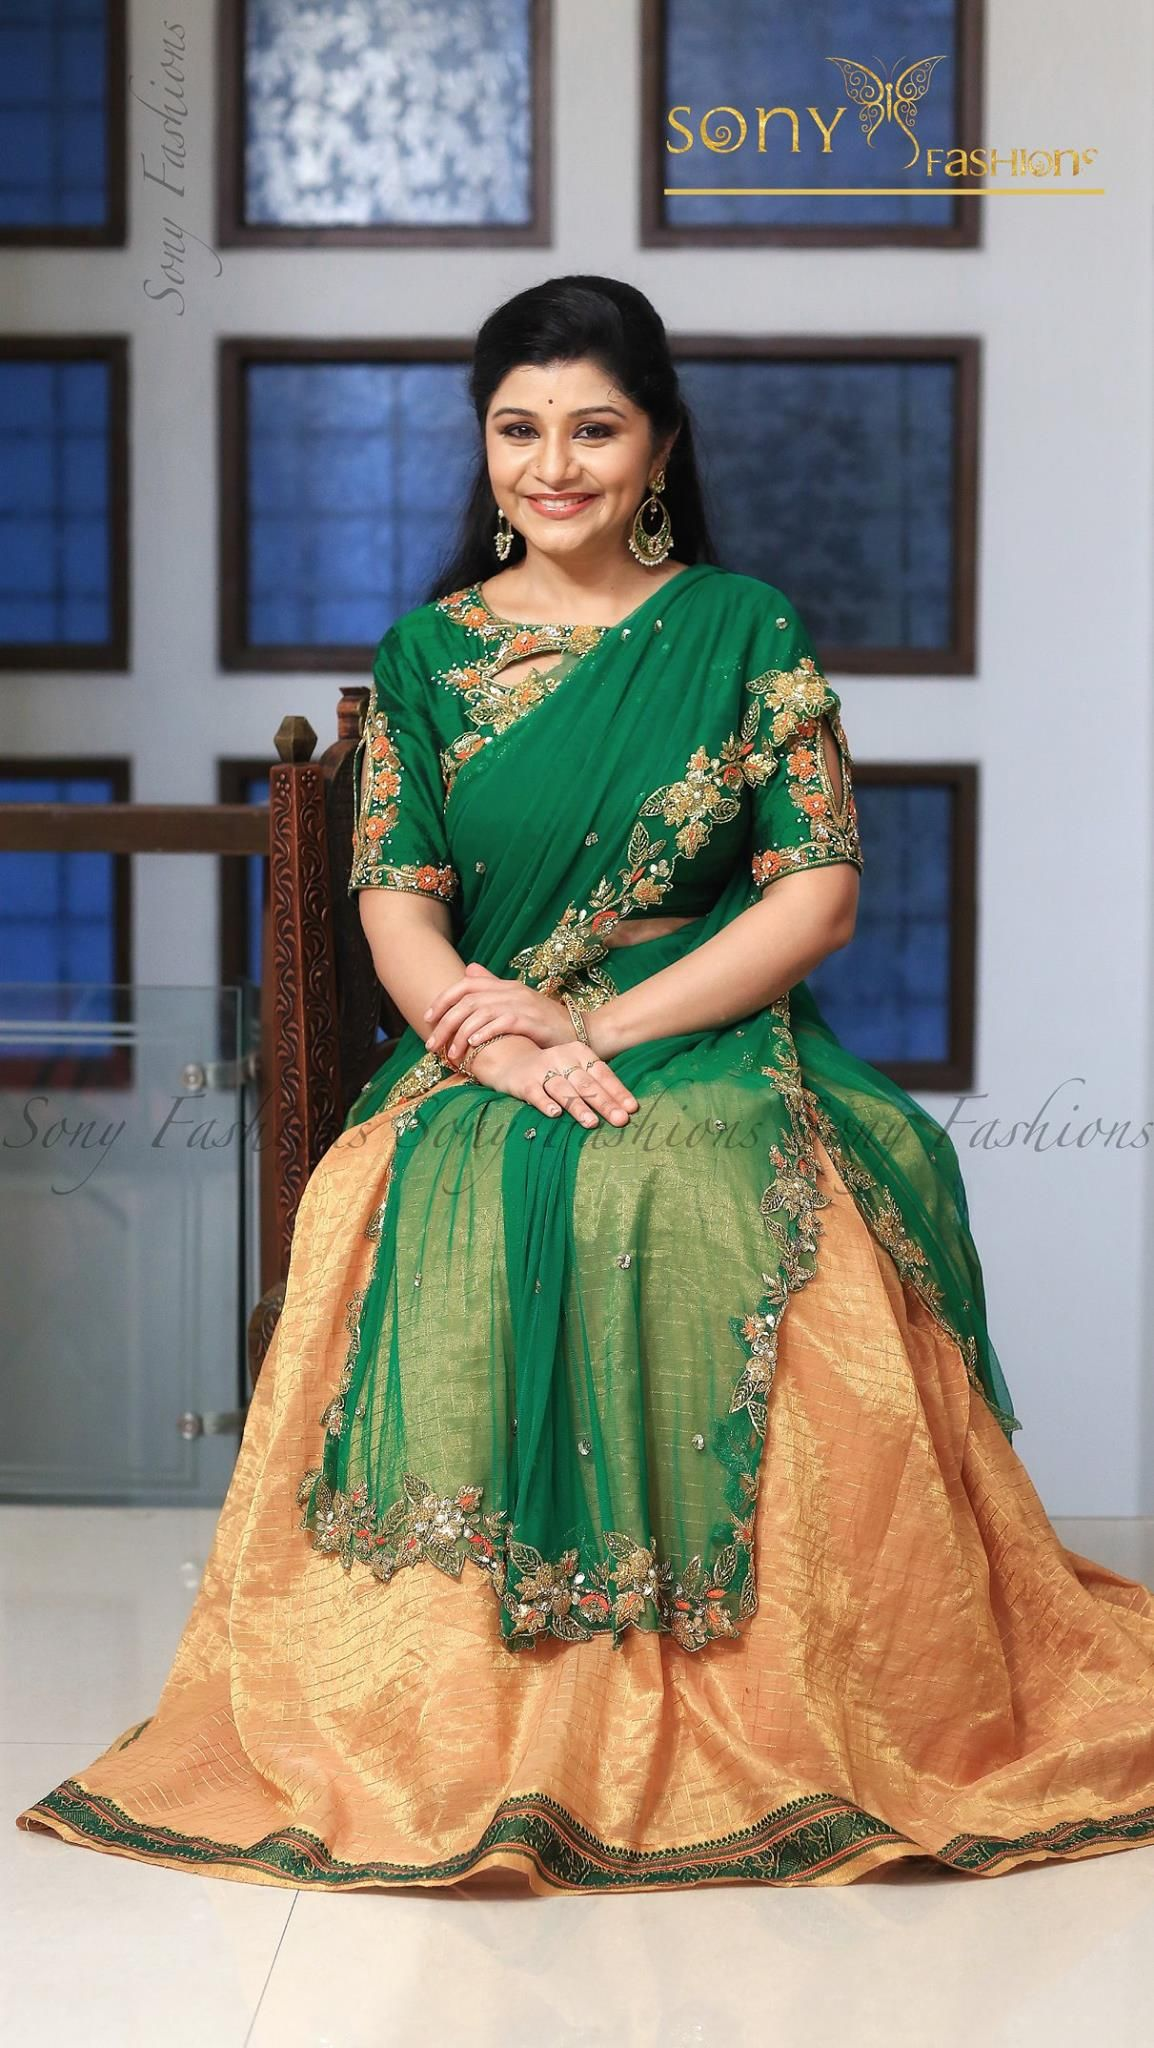 Beautiful kanjeevaram lehenga and green designer blouse with hand embroidery thread work.